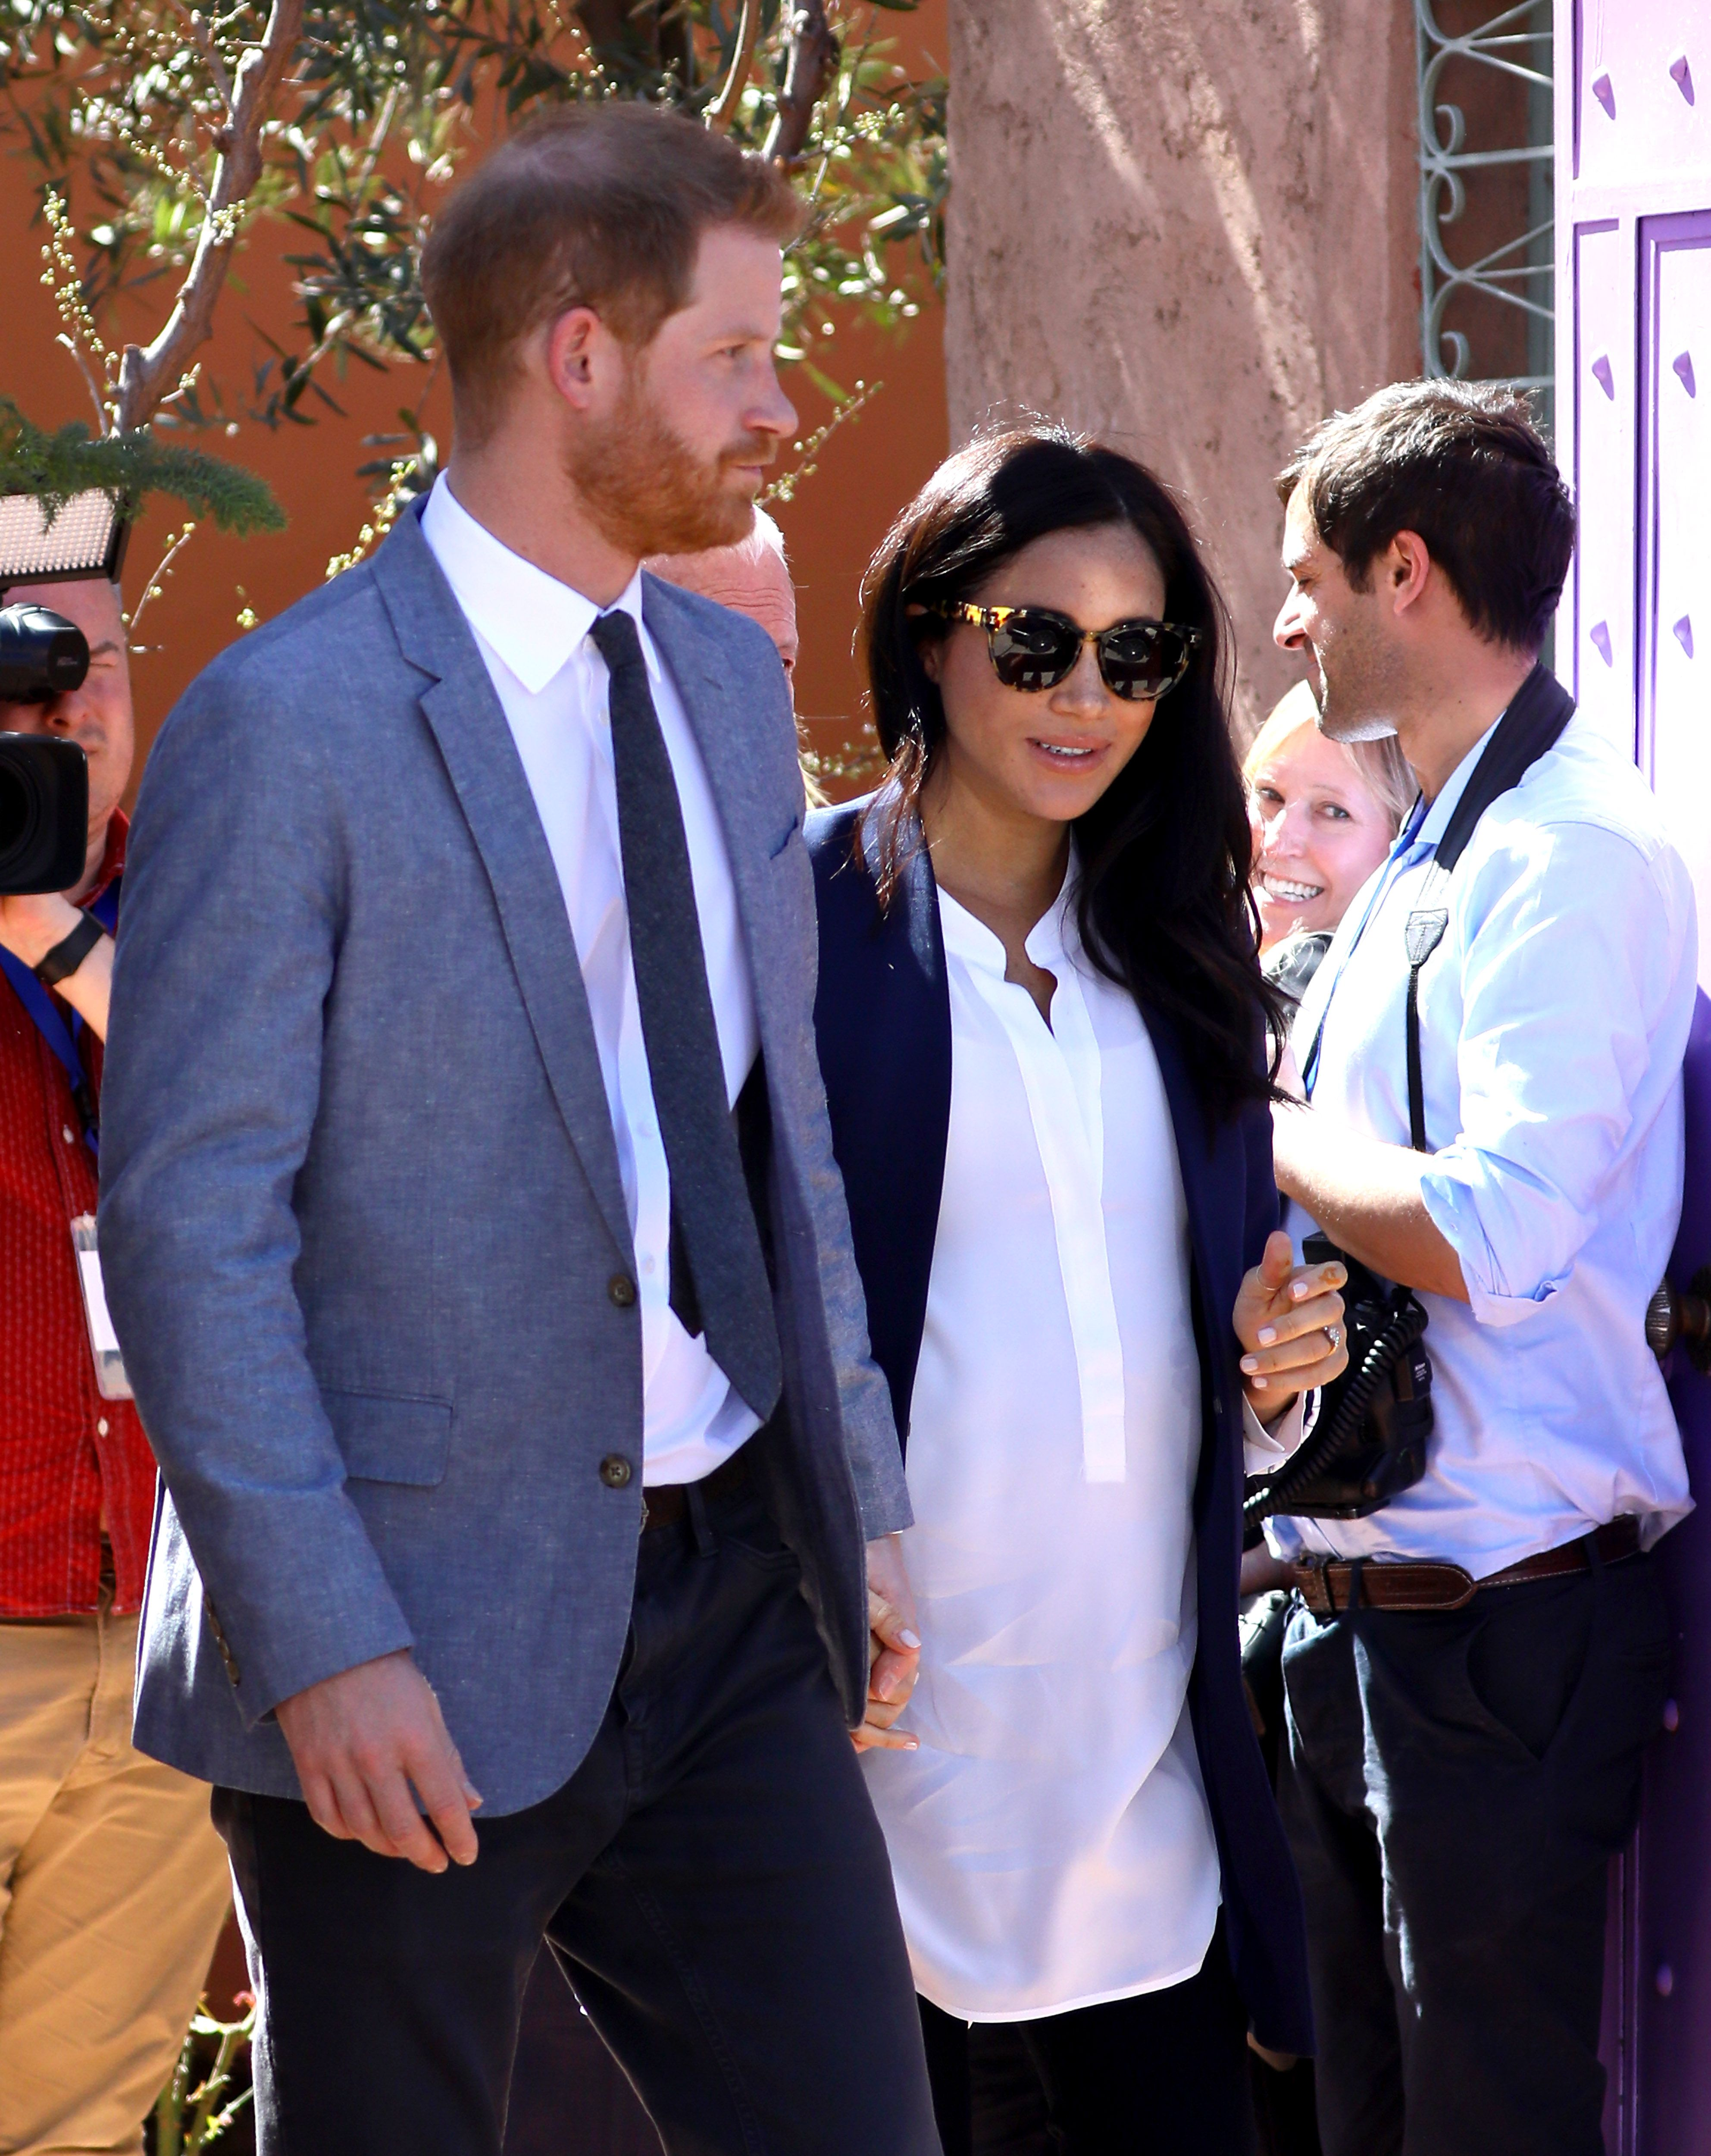 eba665537aa Meghan Markle Just Switched Her Flats for a Stunning Pair of Manolo Blahnik  Pumps in Morocco